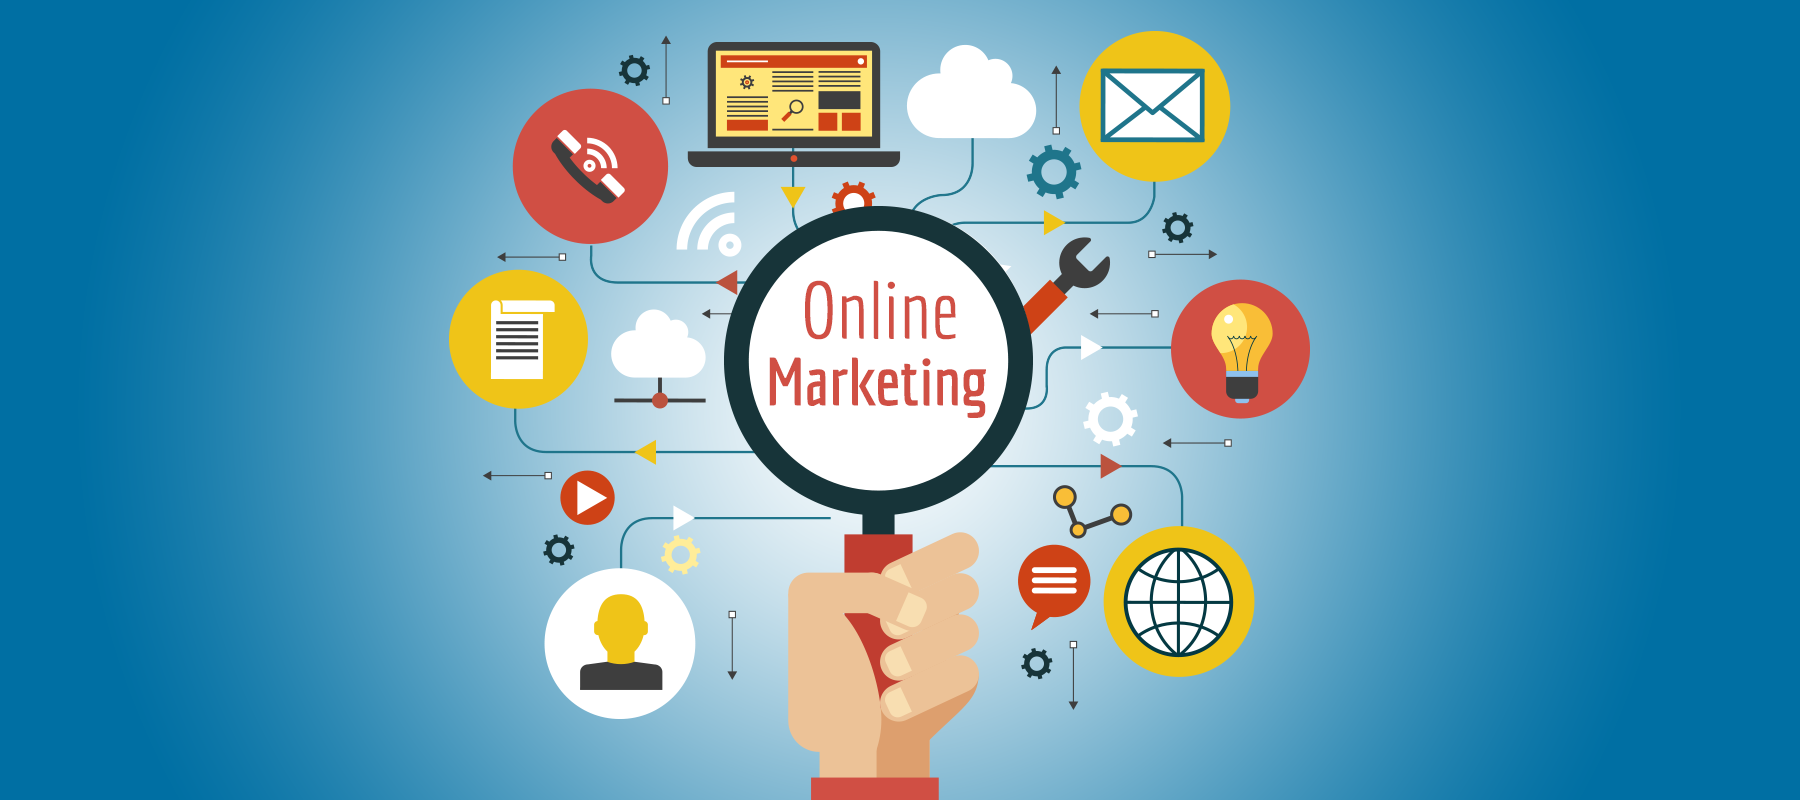 What-Type-of-Online-Marketing-Should-You-Start-With